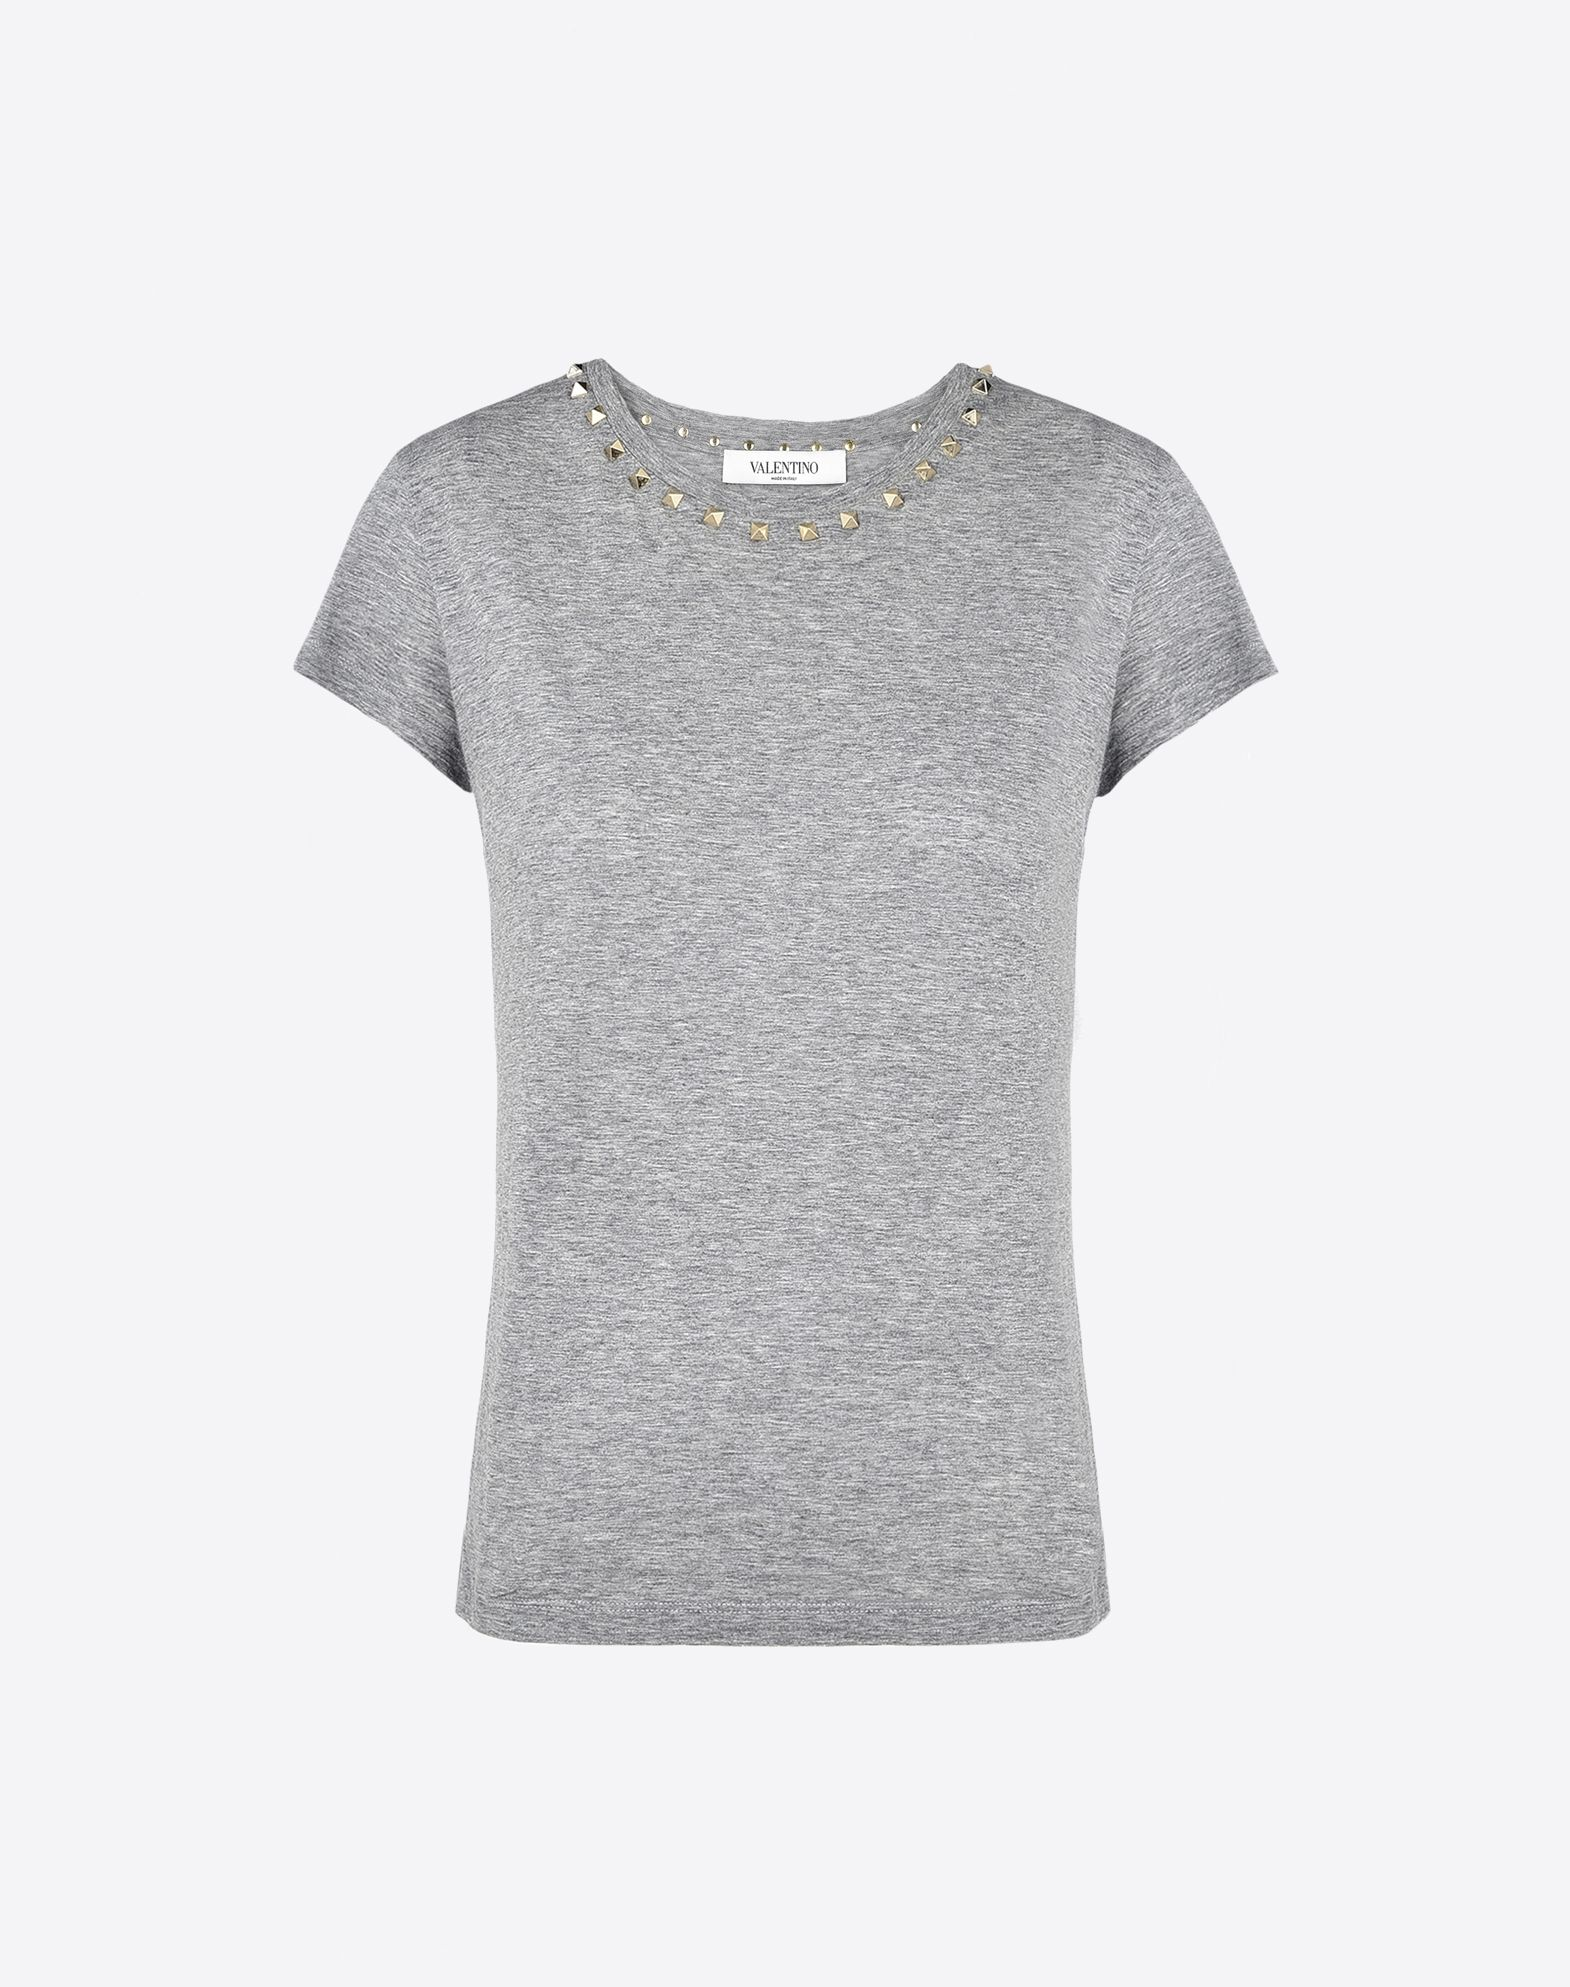 Free Shipping With Mastercard Sale Footlocker Pictures Rockstud collar T-shirt - Grey Valentino Wdf8v9jE